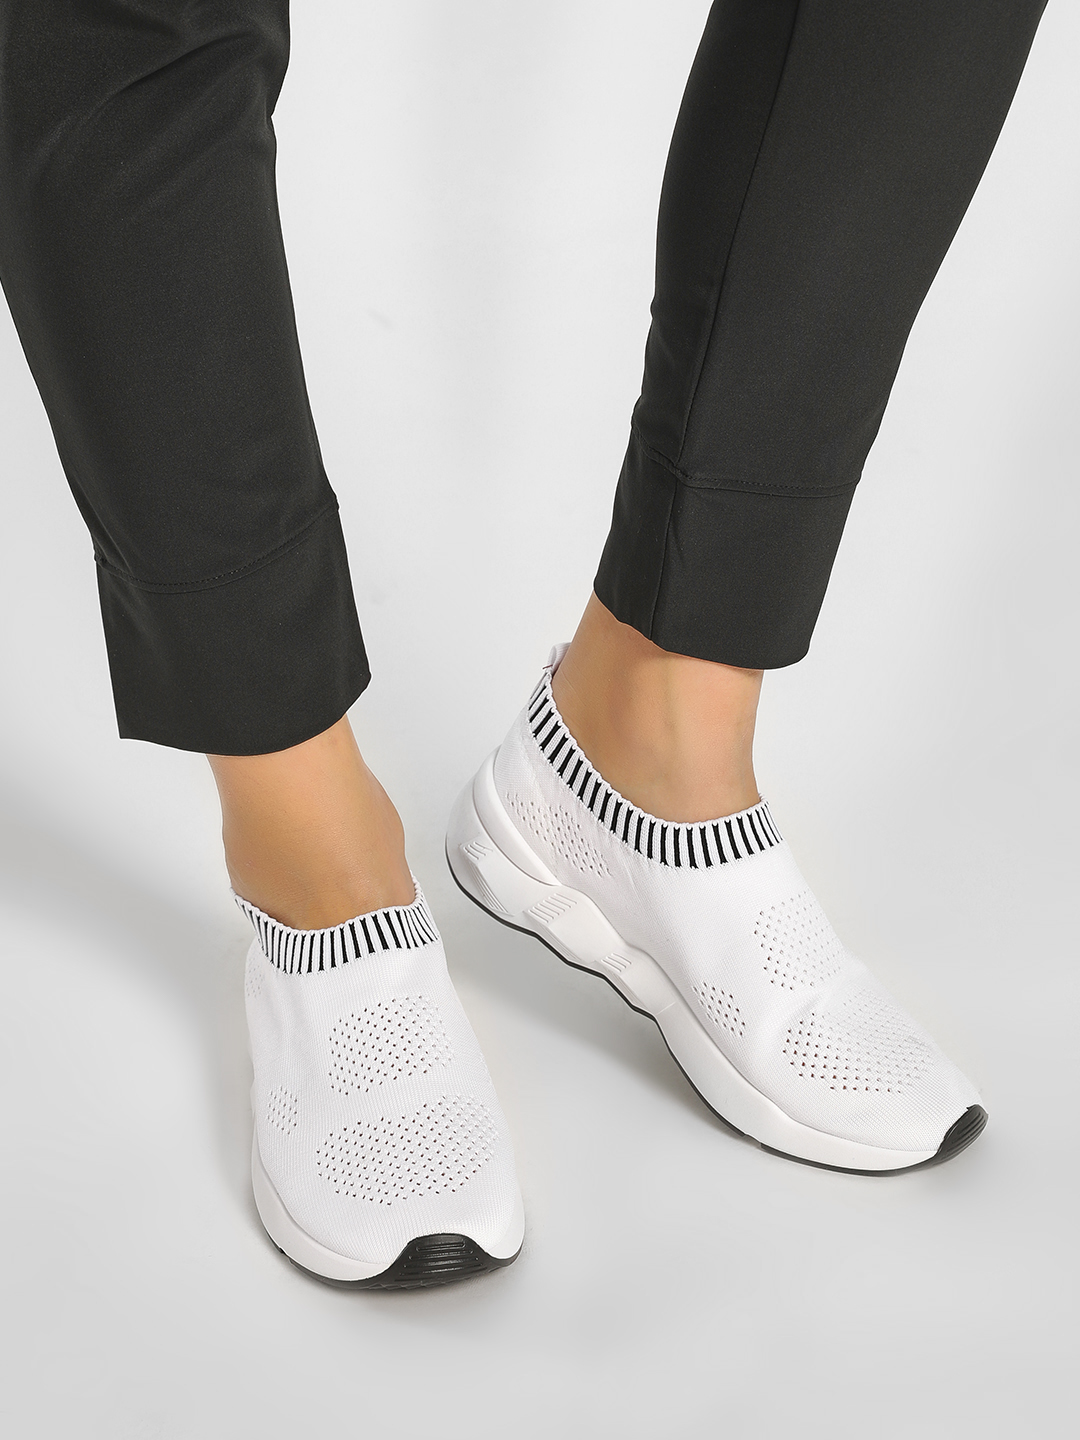 Happy Feet White Mesh Socks Trainers 1